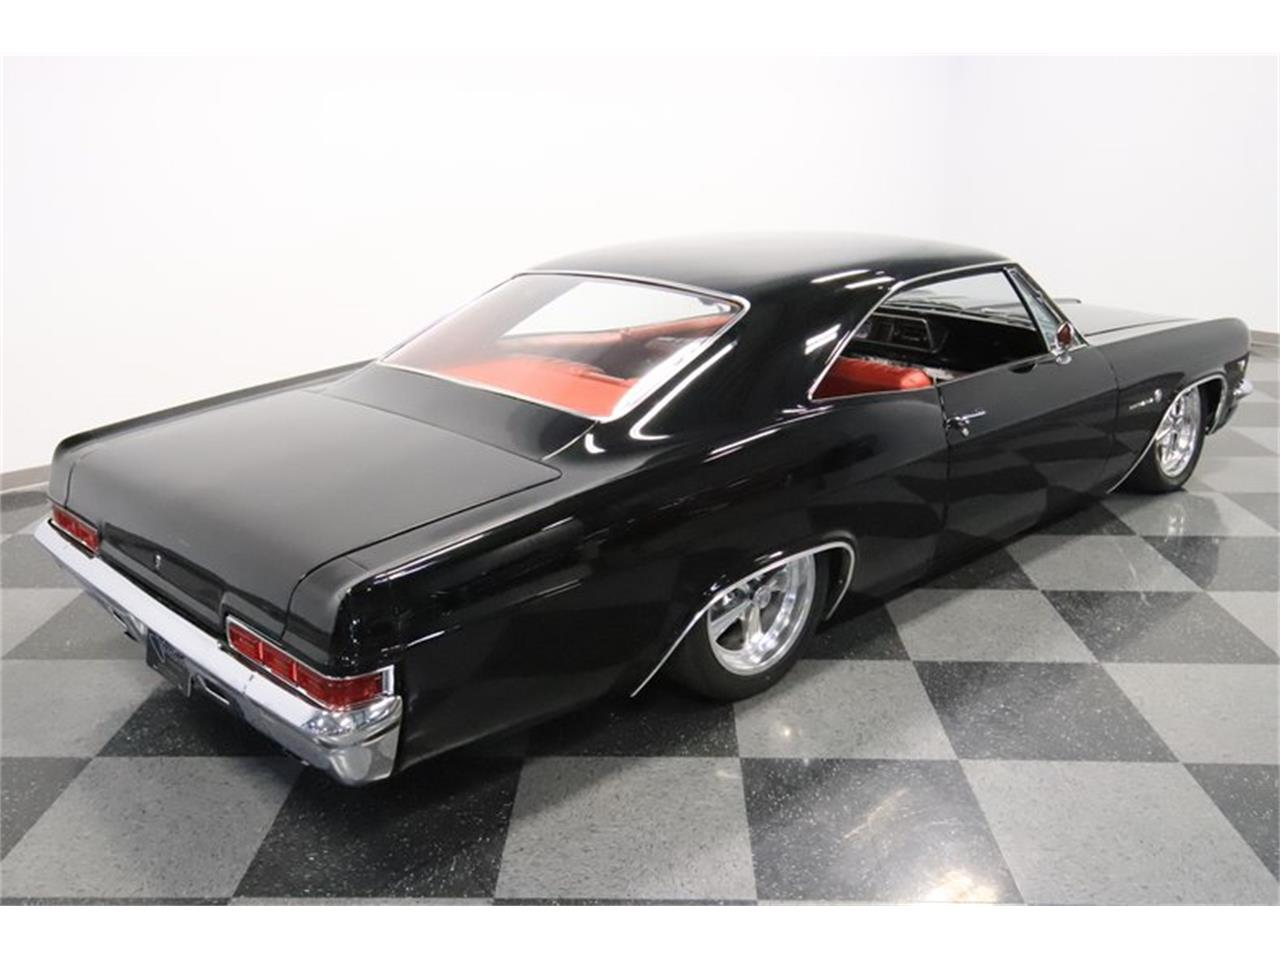 Large Picture of Classic 1966 Impala located in Arizona Offered by Streetside Classics - Phoenix - Q2EF